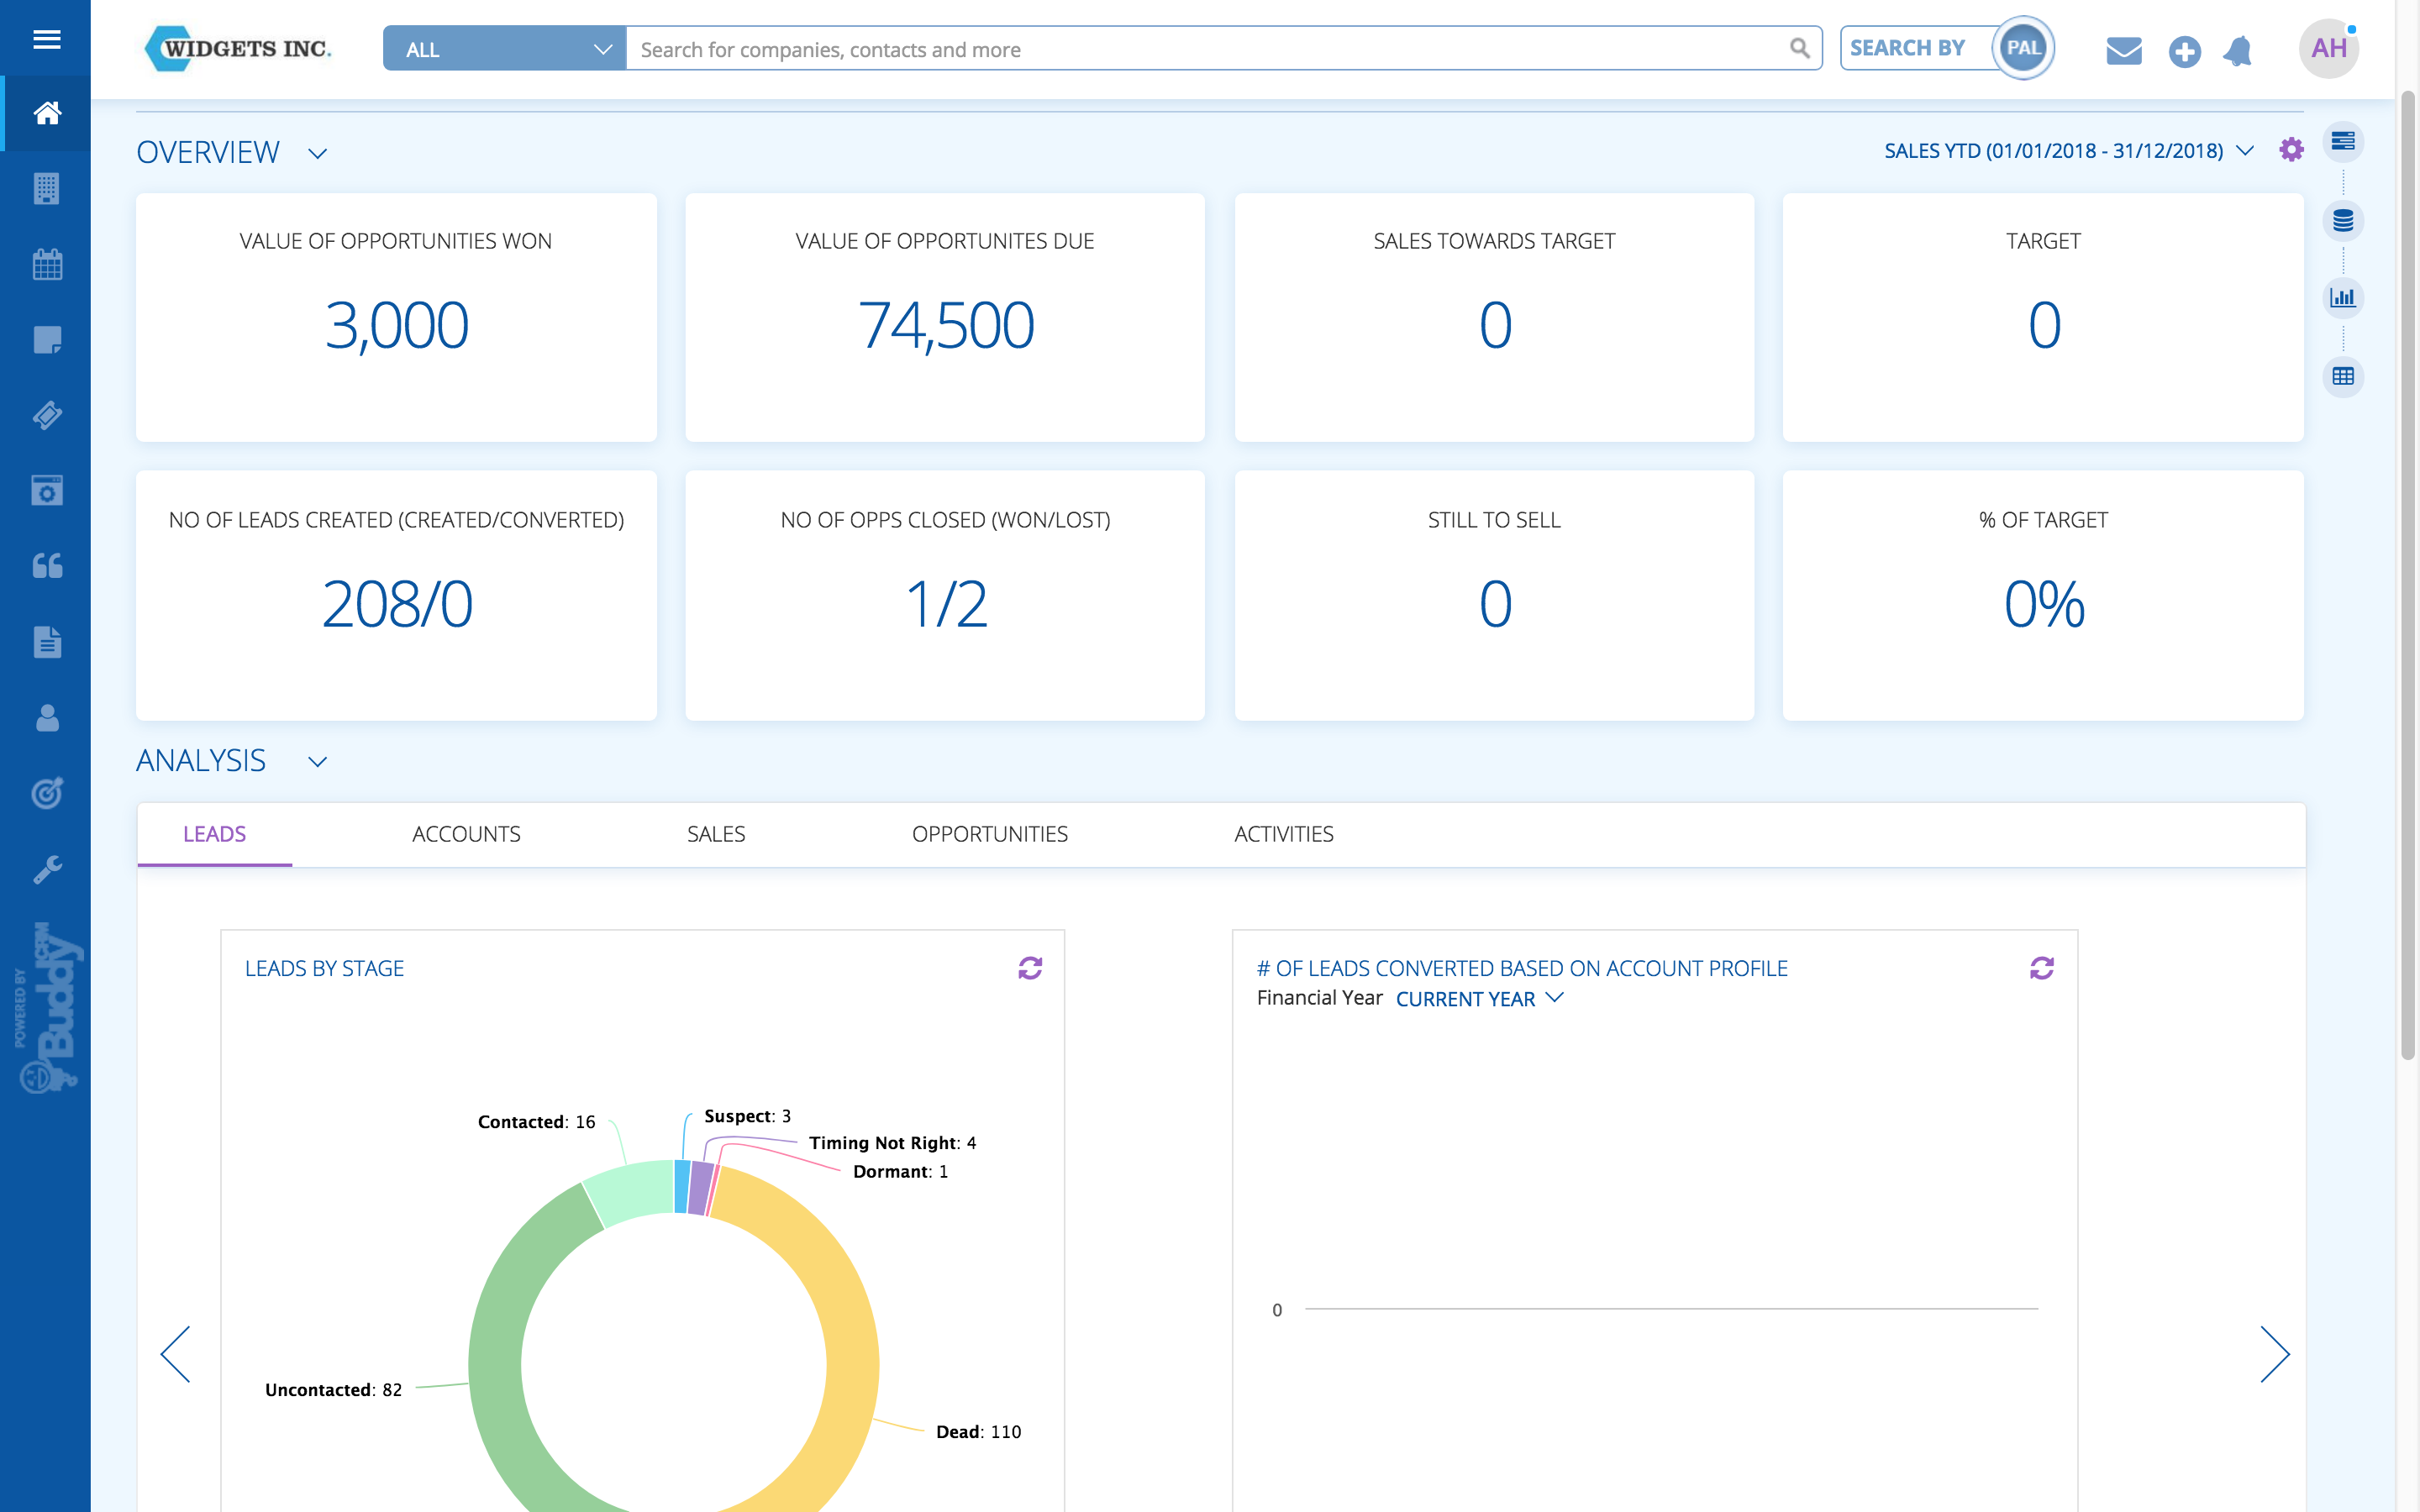 BuddyCRM dashboard with analysis and overview showing